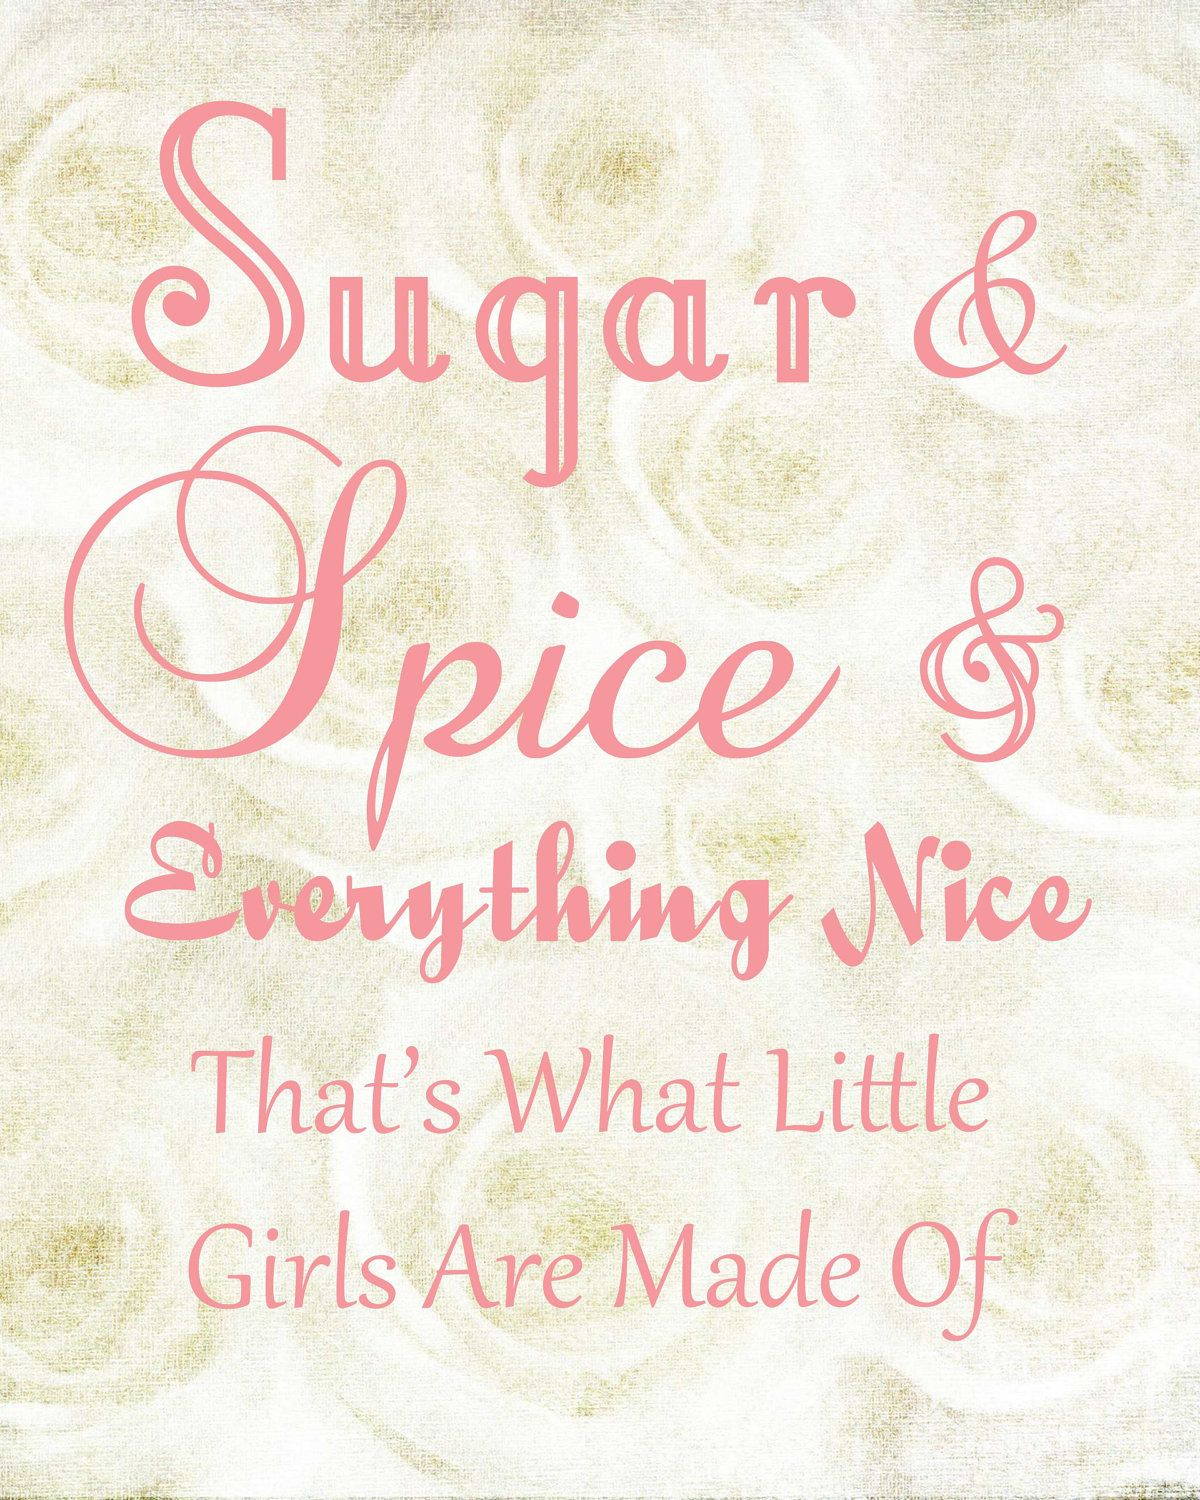 Baby Girl Daughter Quotes: Subway Art Sugar And Spice For Baby Girl's Nursery By